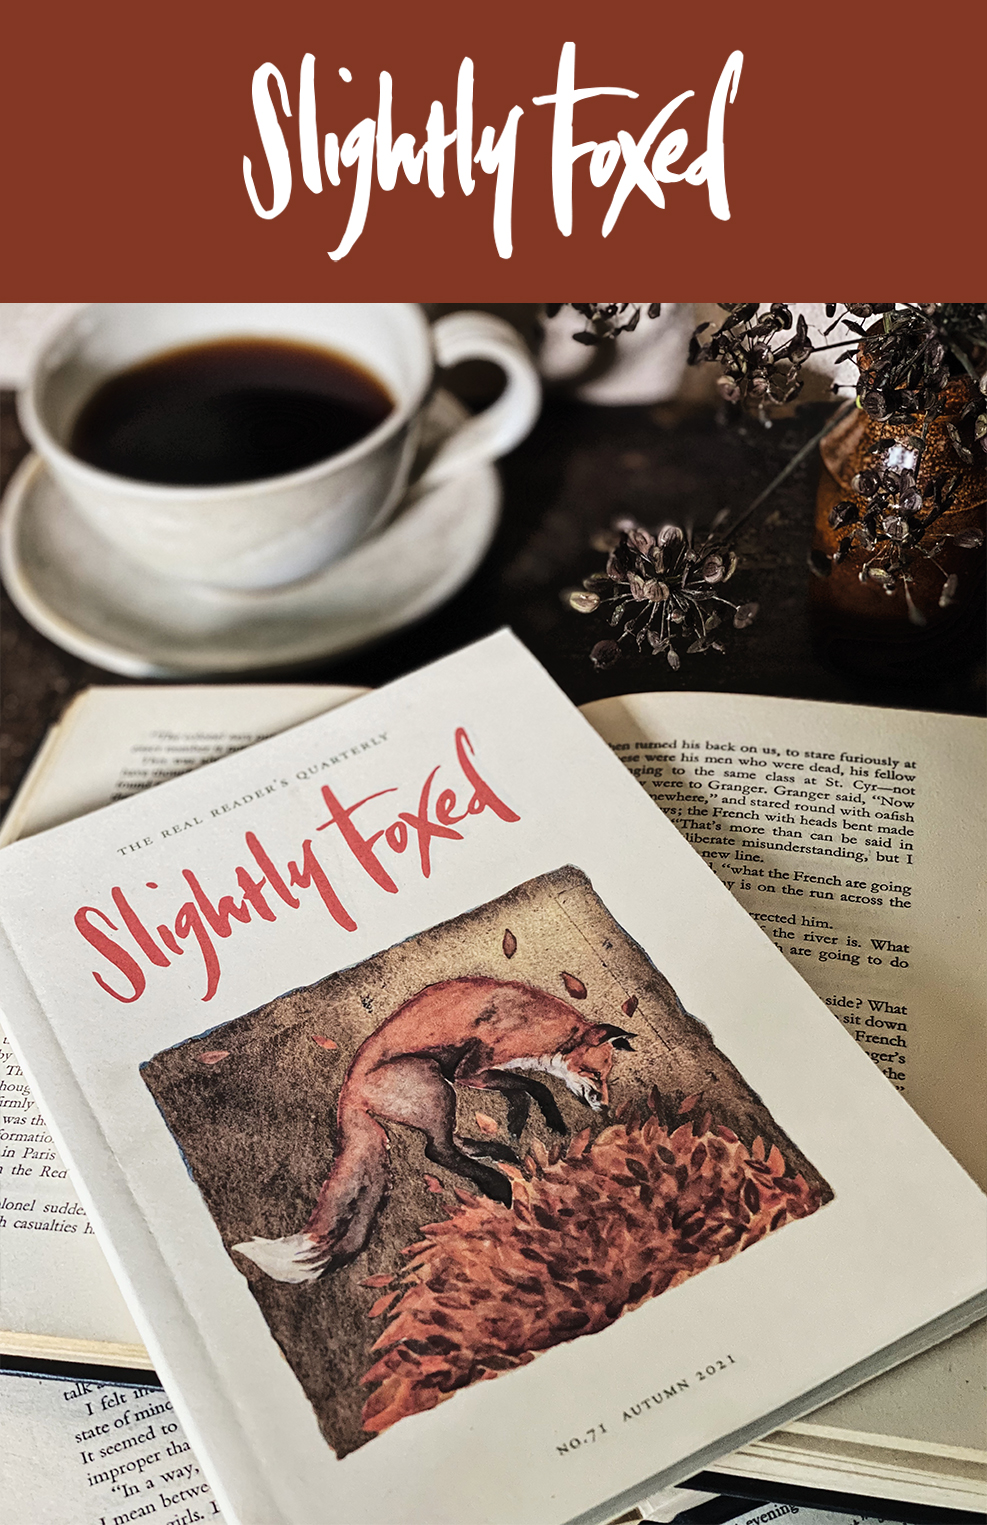 A Celebration of Slightly Foxed Readers | Issue 71, Slightly Foxed magazine